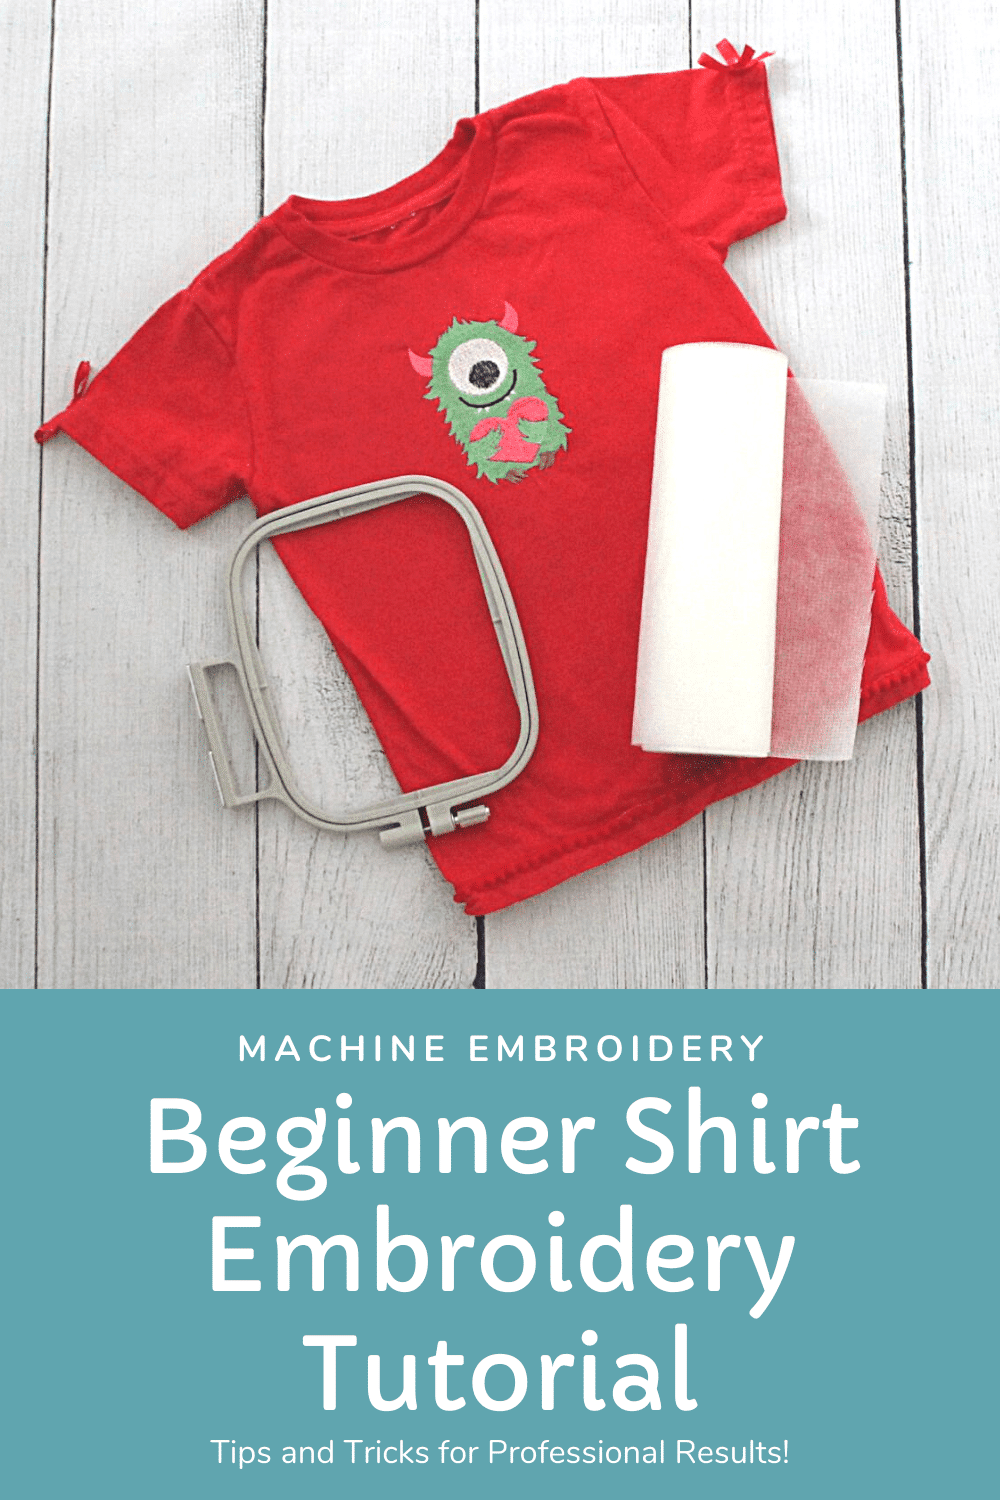 howt to machine embroider a t-shirt